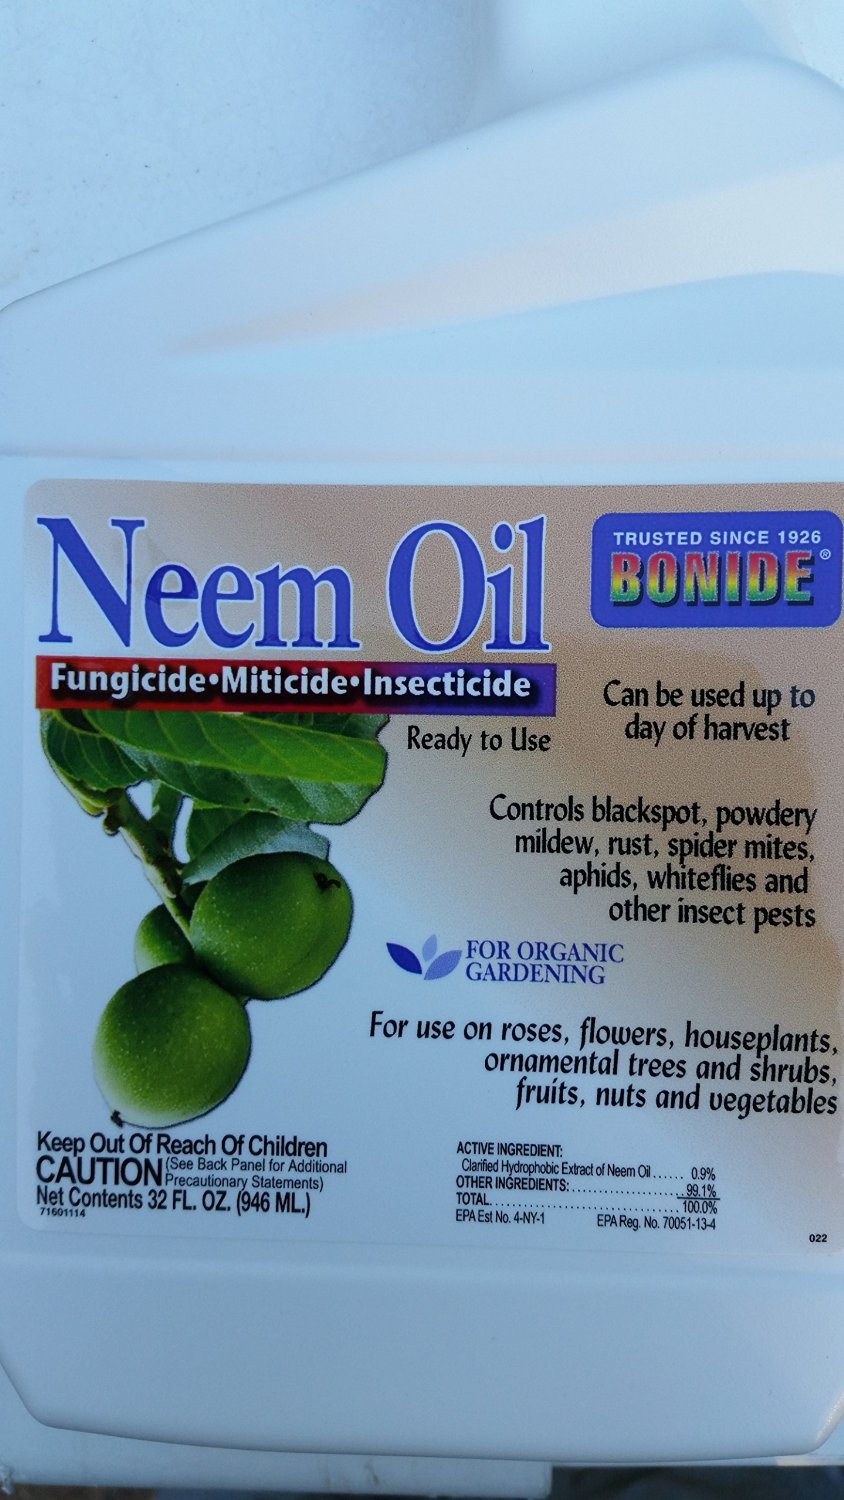 ( 32 oz) NEEM OIL ORGANIC, (ready to use), excellent organic pesticide, fungicide- made from natural neem tree seeds.great for vegetable gardening, fruit gardening and ORGANIC GARDENING, no mixing necessary, just aim and spray